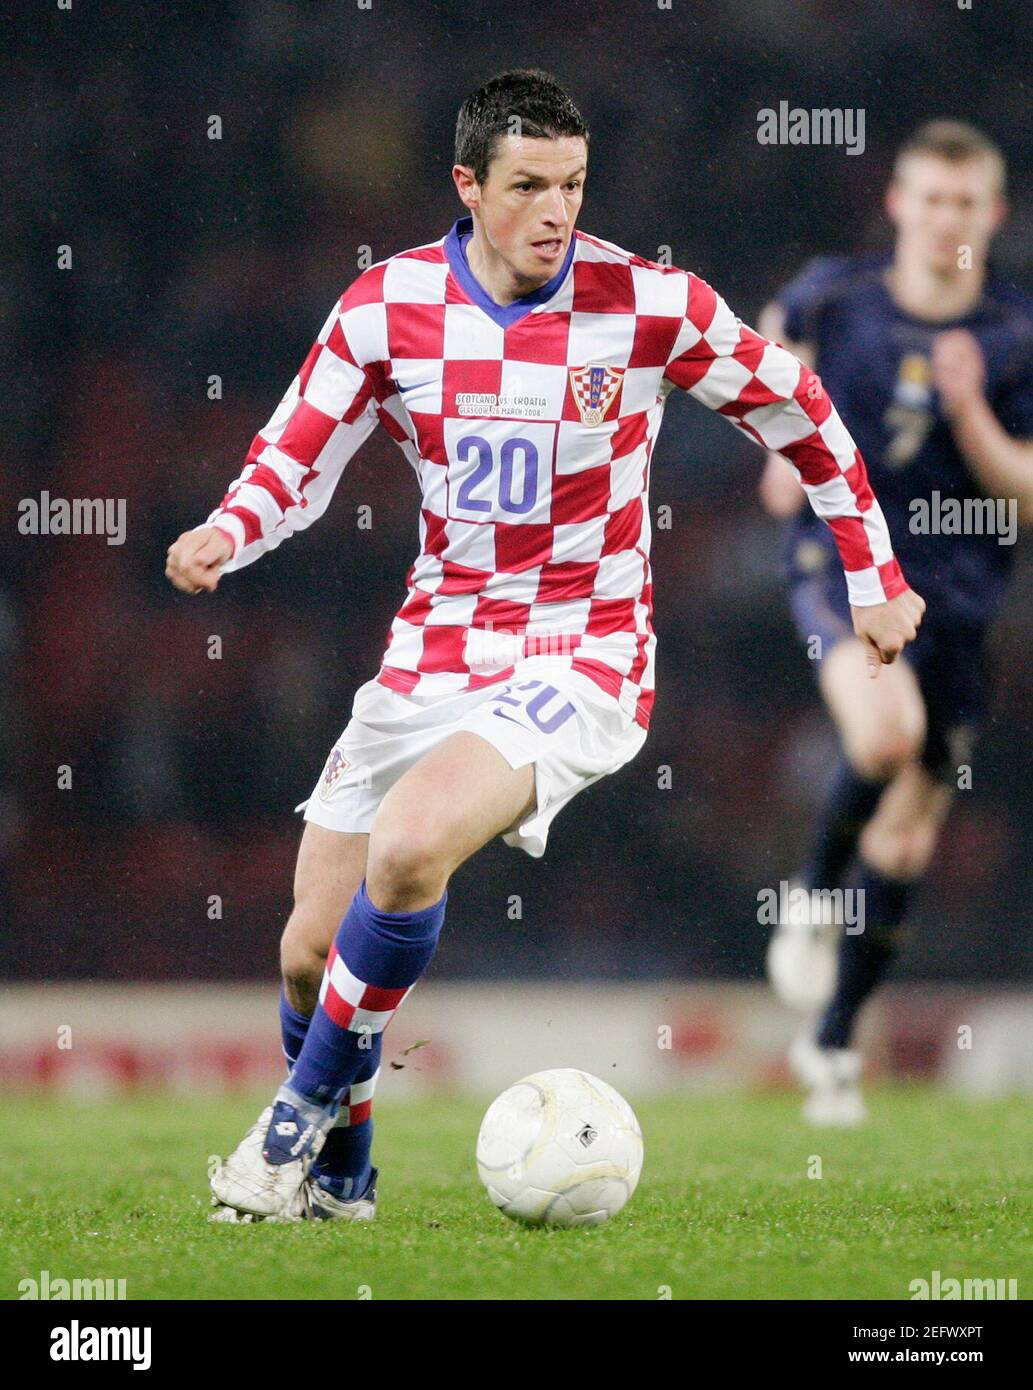 Football - stock , 26/3/08 Igor Budans - Croatie crédit obligatoire: Images action / Lee Smith Banque D'Images